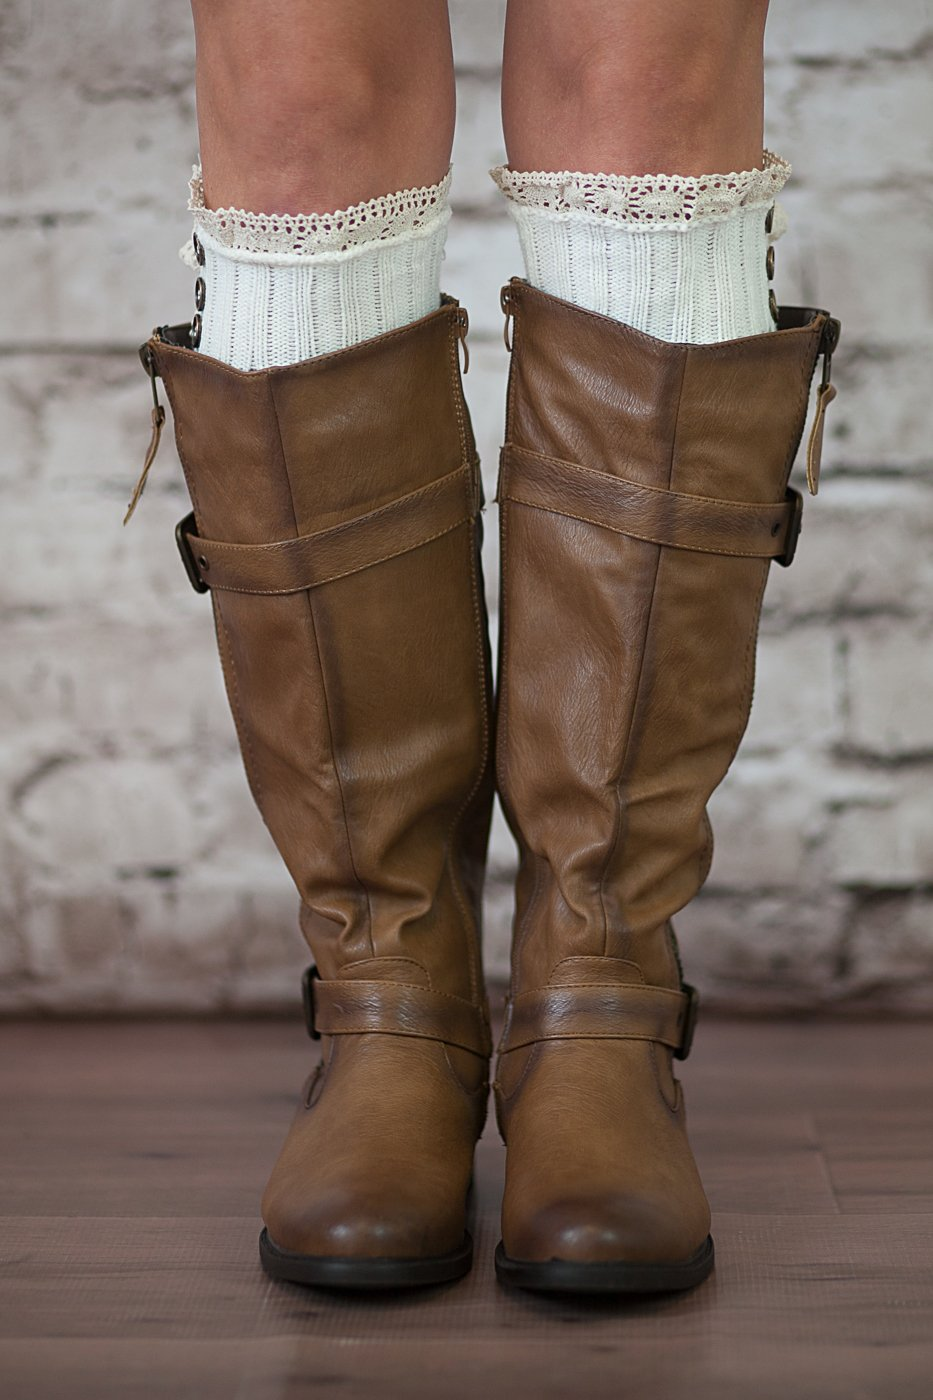 Boot Cuffs Vintage 3 Button Style Women's Boutique Socks Brand by Modern Boho Ivory by Boutique Socks (Image #2)